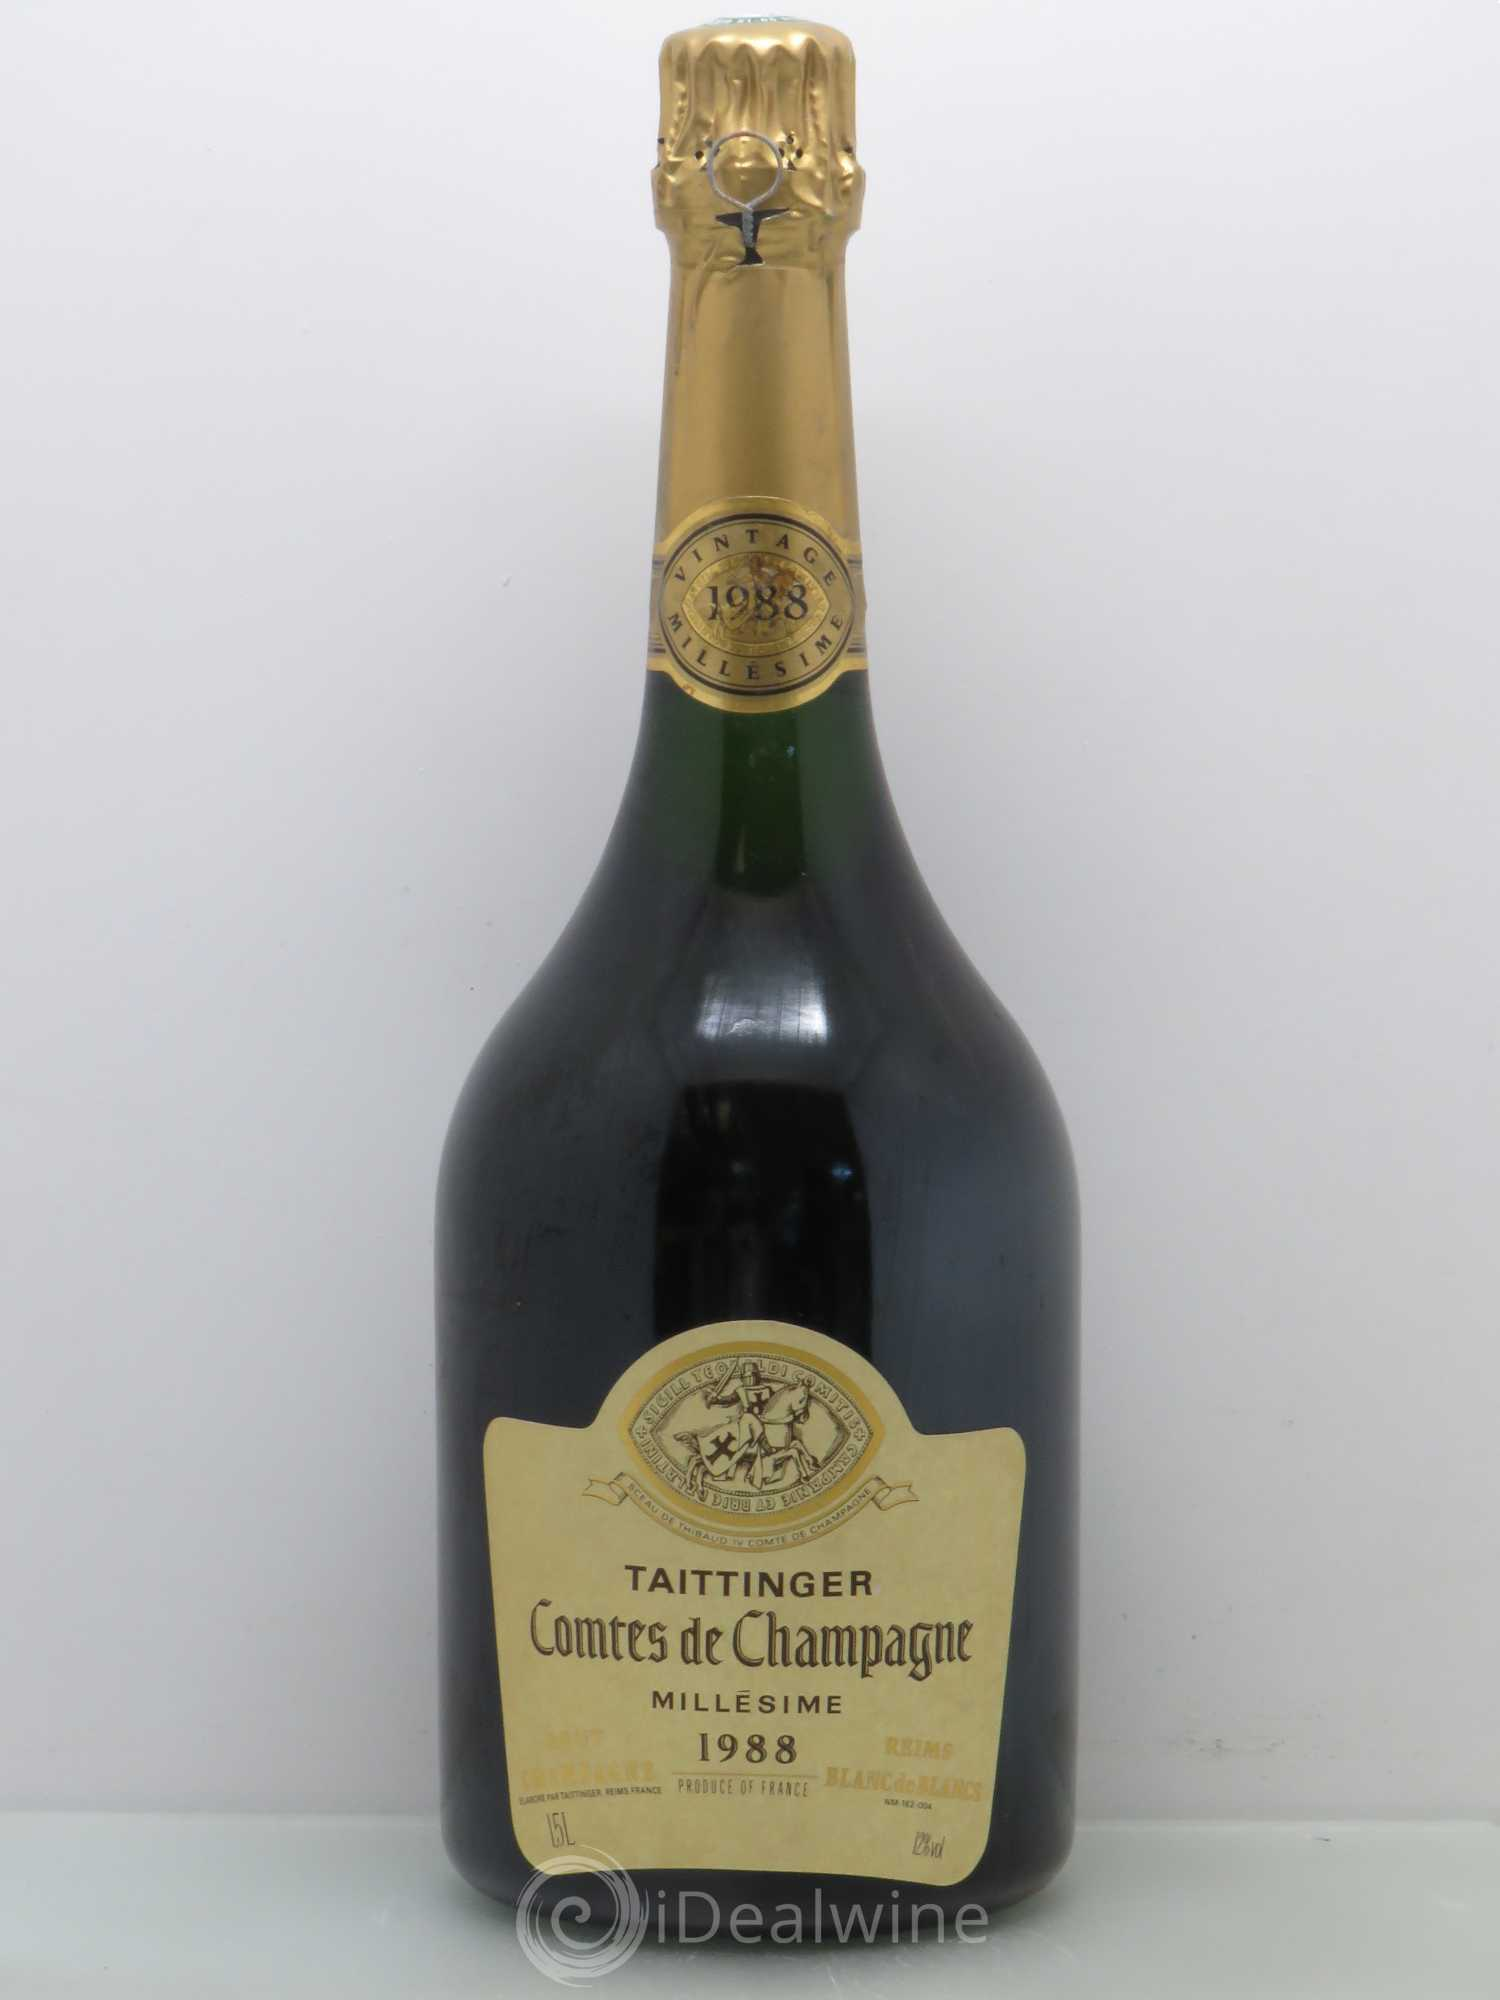 acheter comtes de champagne champagne taittinger 1988 lot 2031. Black Bedroom Furniture Sets. Home Design Ideas